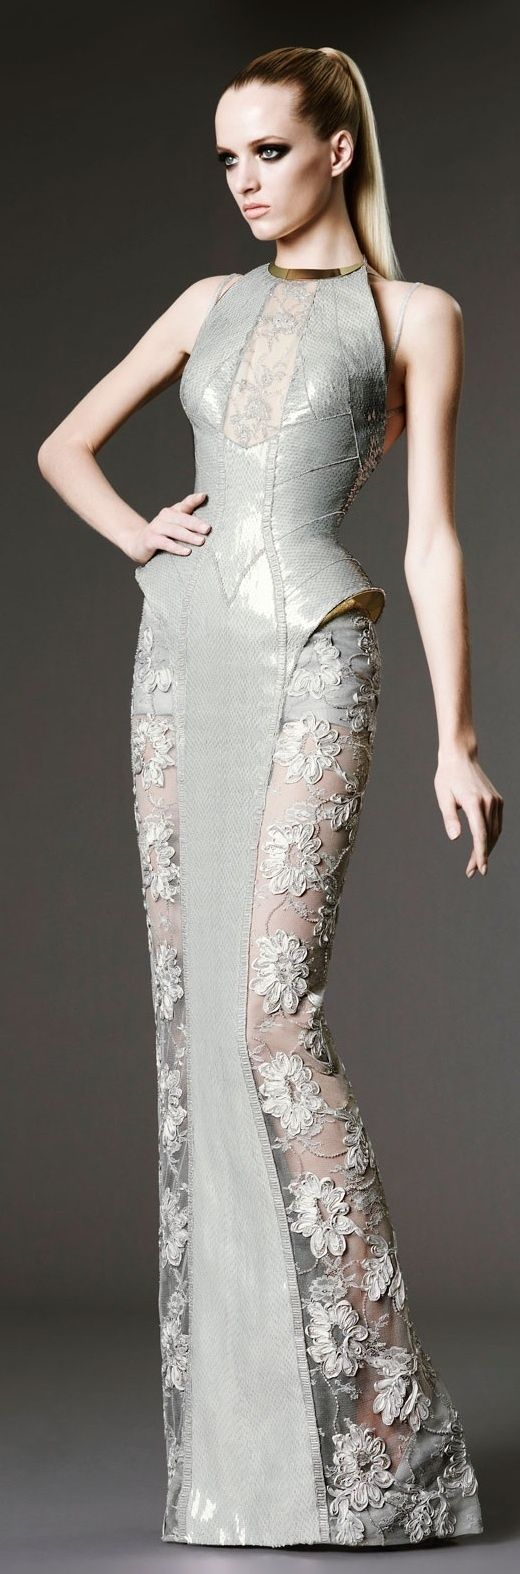 94 best Versace images on Pinterest | High fashion, Formal prom ...